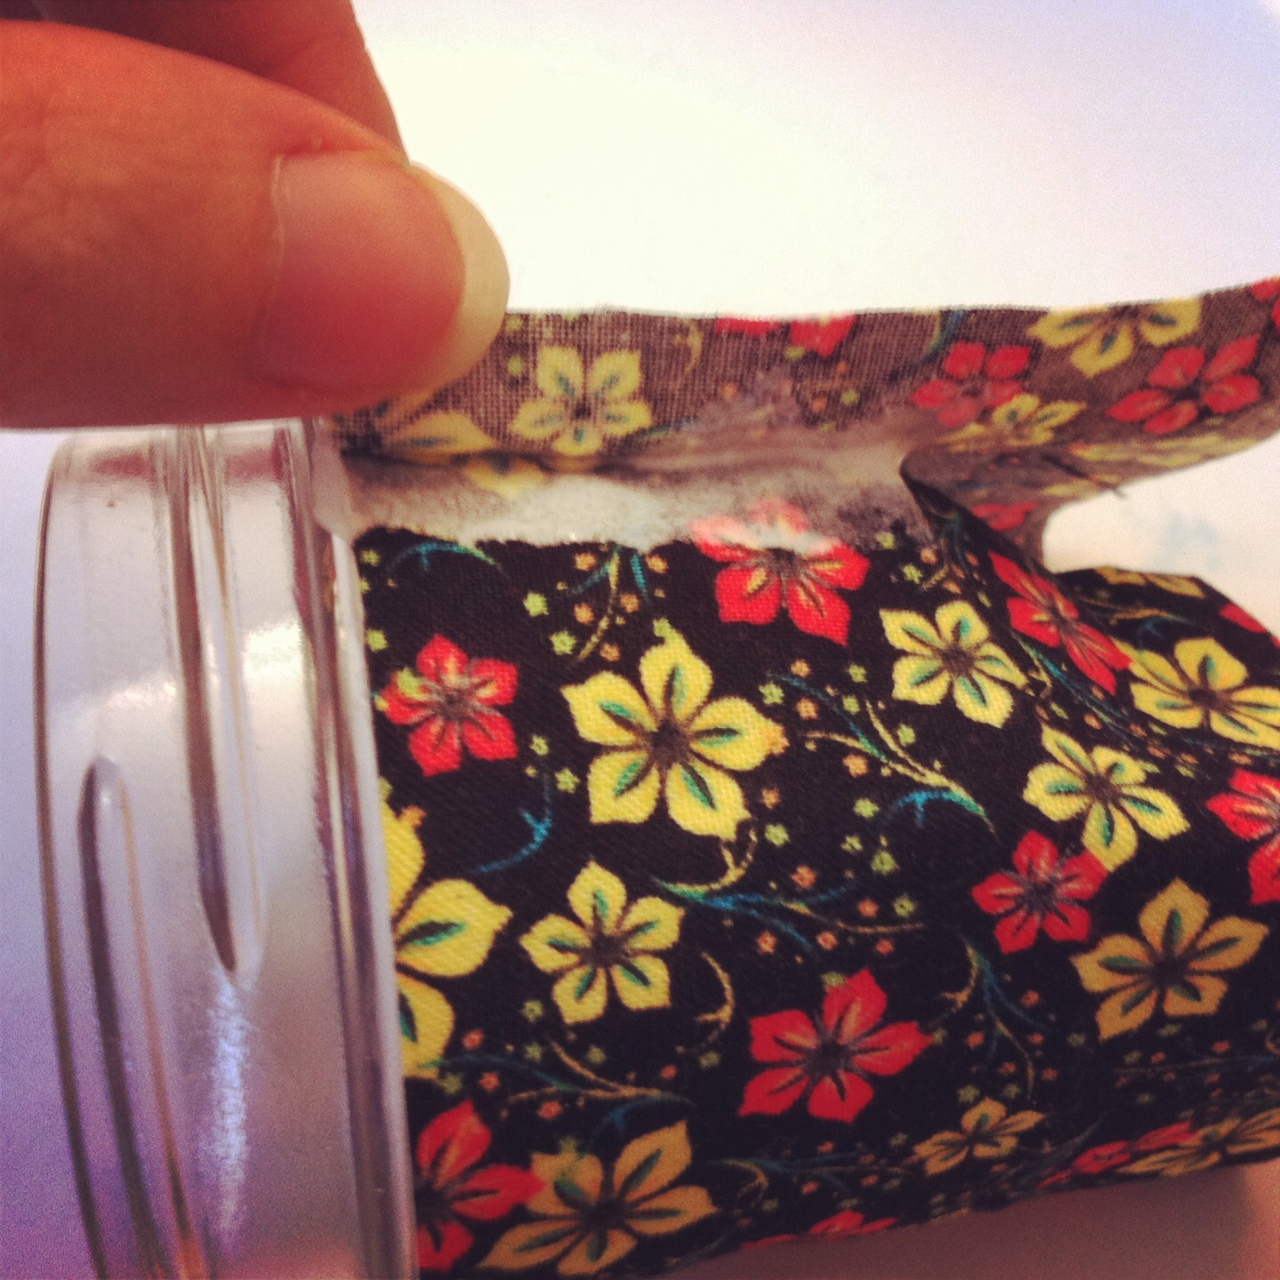 Wrap fabric around jar